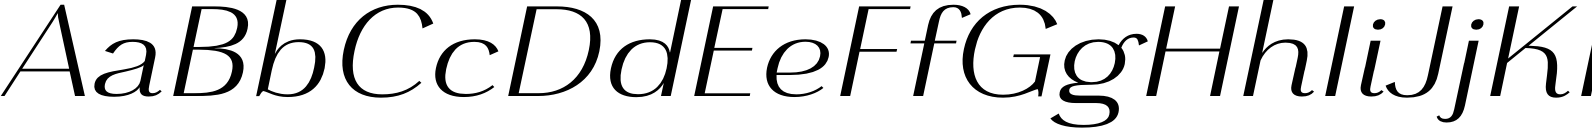 Grenale Ext Regular Italic Font